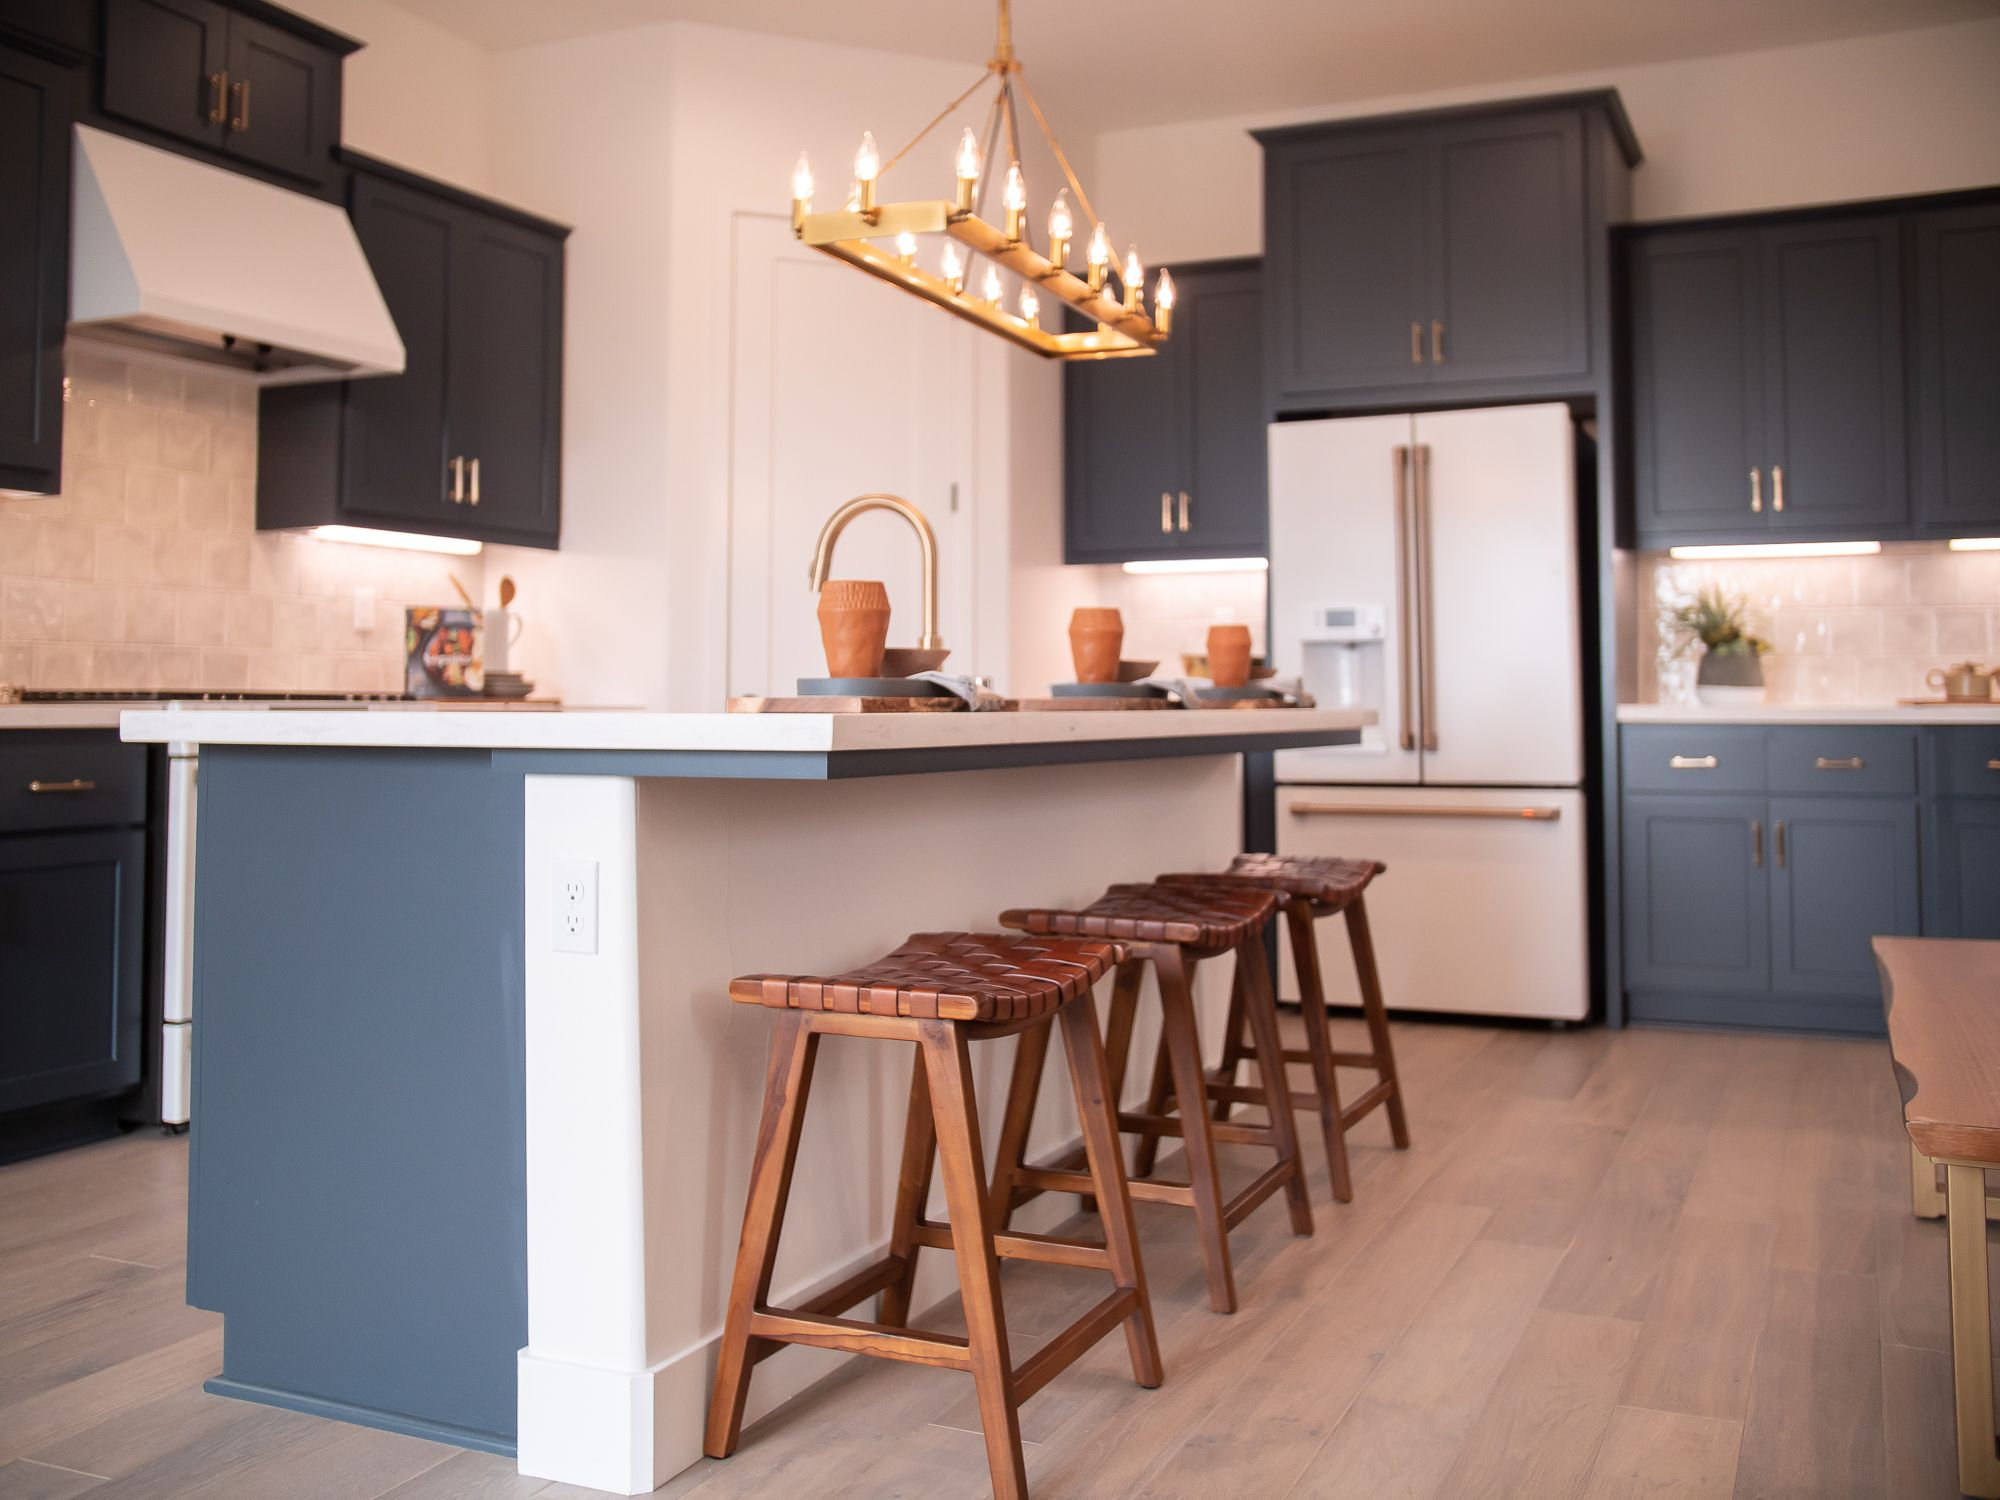 Kitchen featured in the Village Courts Collection Residence 9 By BlackPine Communites